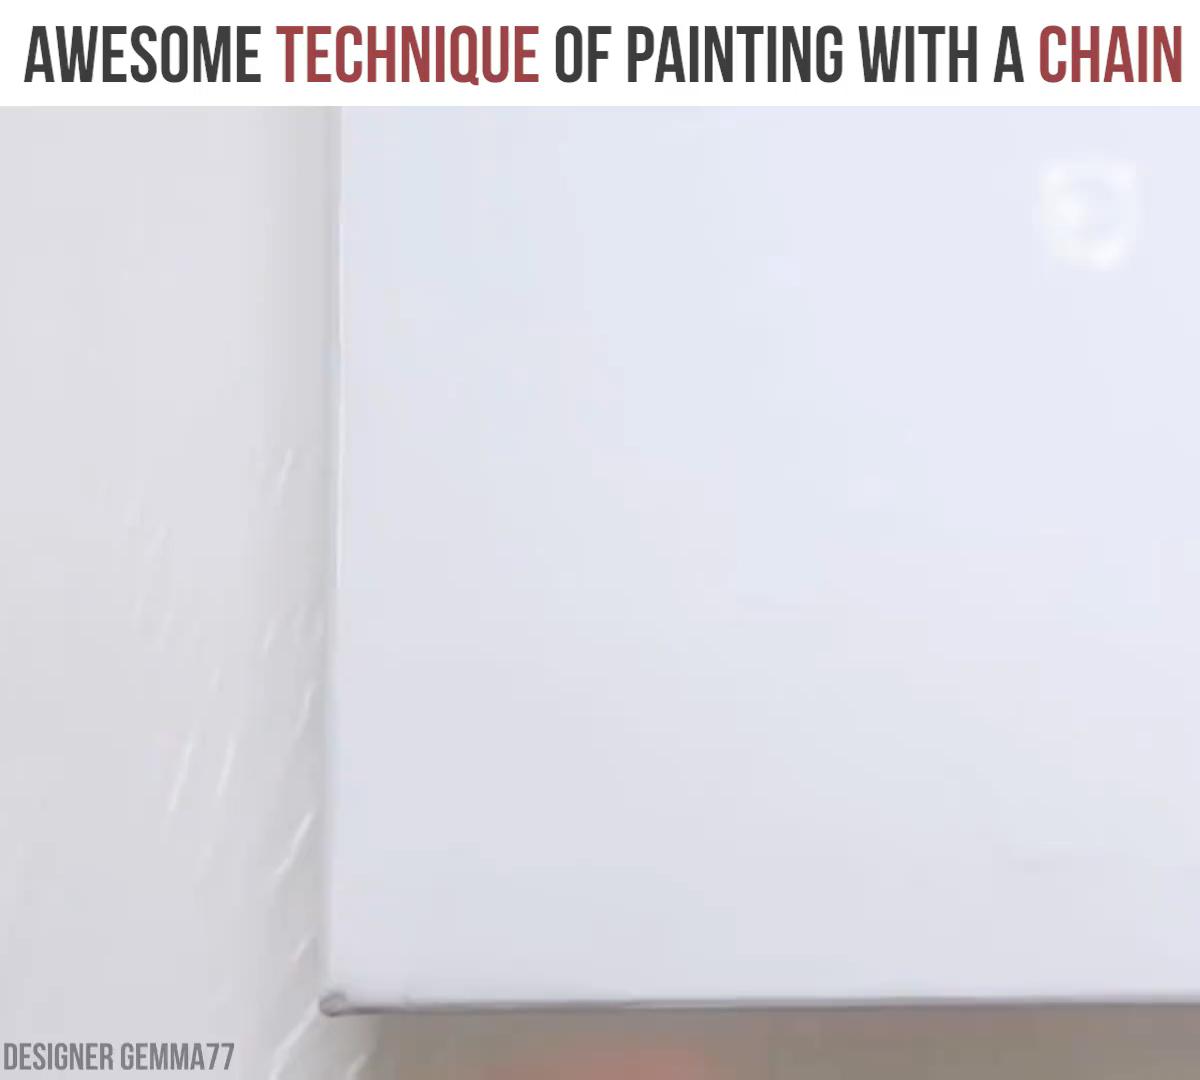 Photo of Awesome technique of painting with a chain